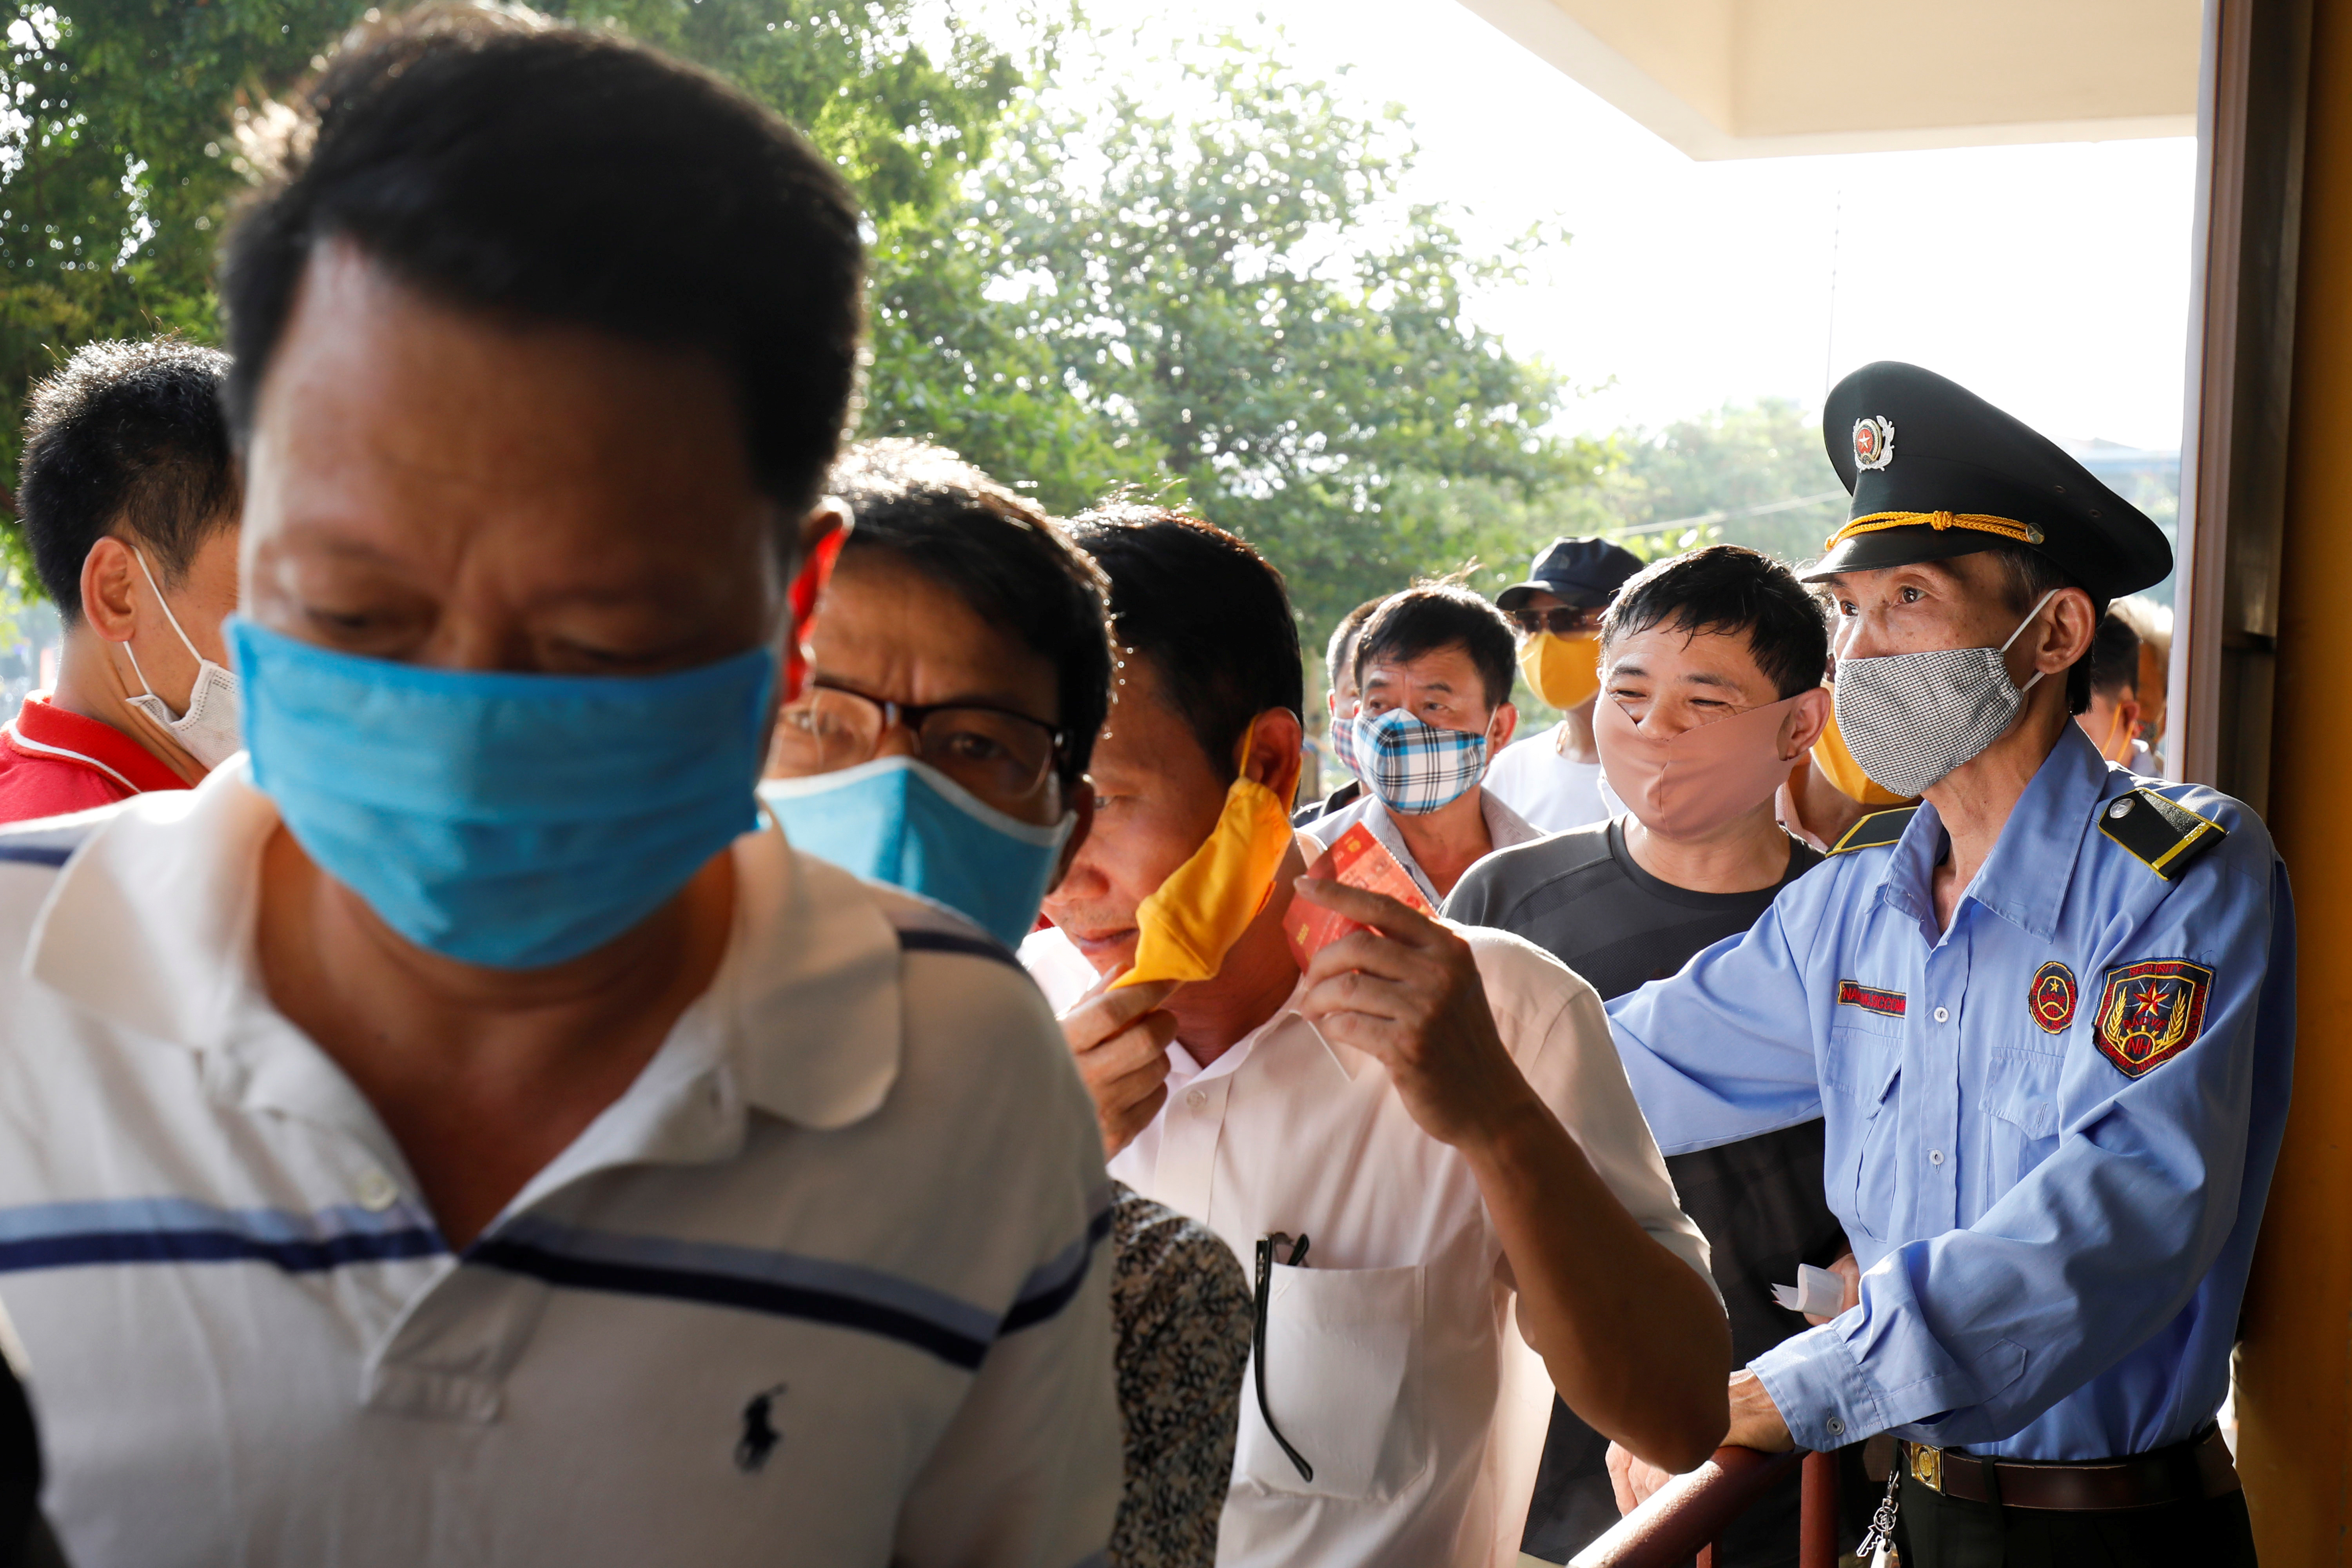 Soccer fans wearing protective masks arrive for a soccer match between Viettel and Duoc Nam Ha Nam Dinh of the V.League, the National soccer league, after the Government eased nationwide lockdown following the coronavirus disease (COVID-19) outbreak in Nam Dinh province, Vietnam June 5, 2020. REUTERS/Kham - RC223H97S5V8